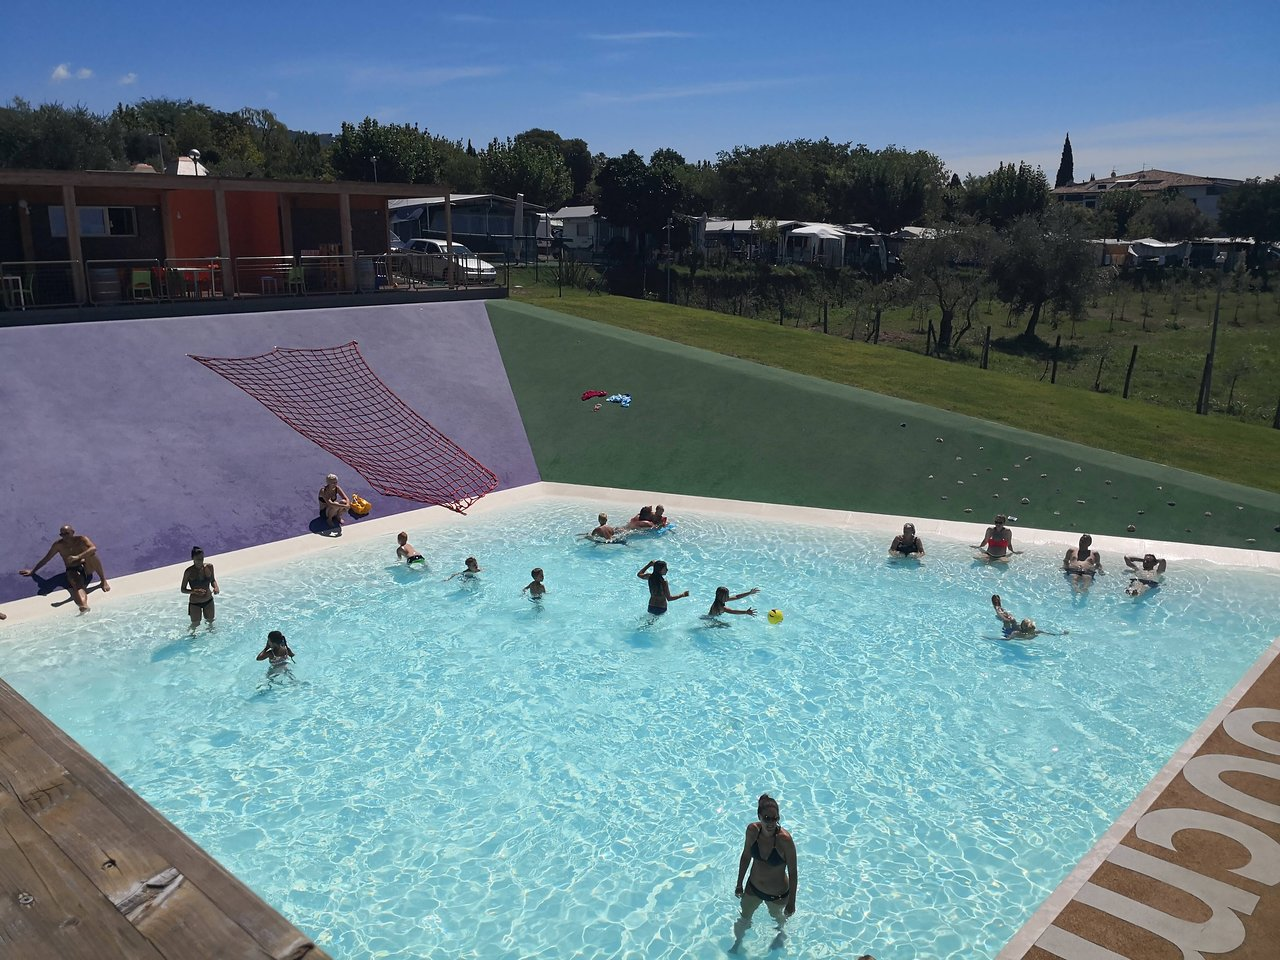 Ferienhaus Mit Pool Gardasee Bardolino Camping Continental Updated 2019 Prices Campground Reviews